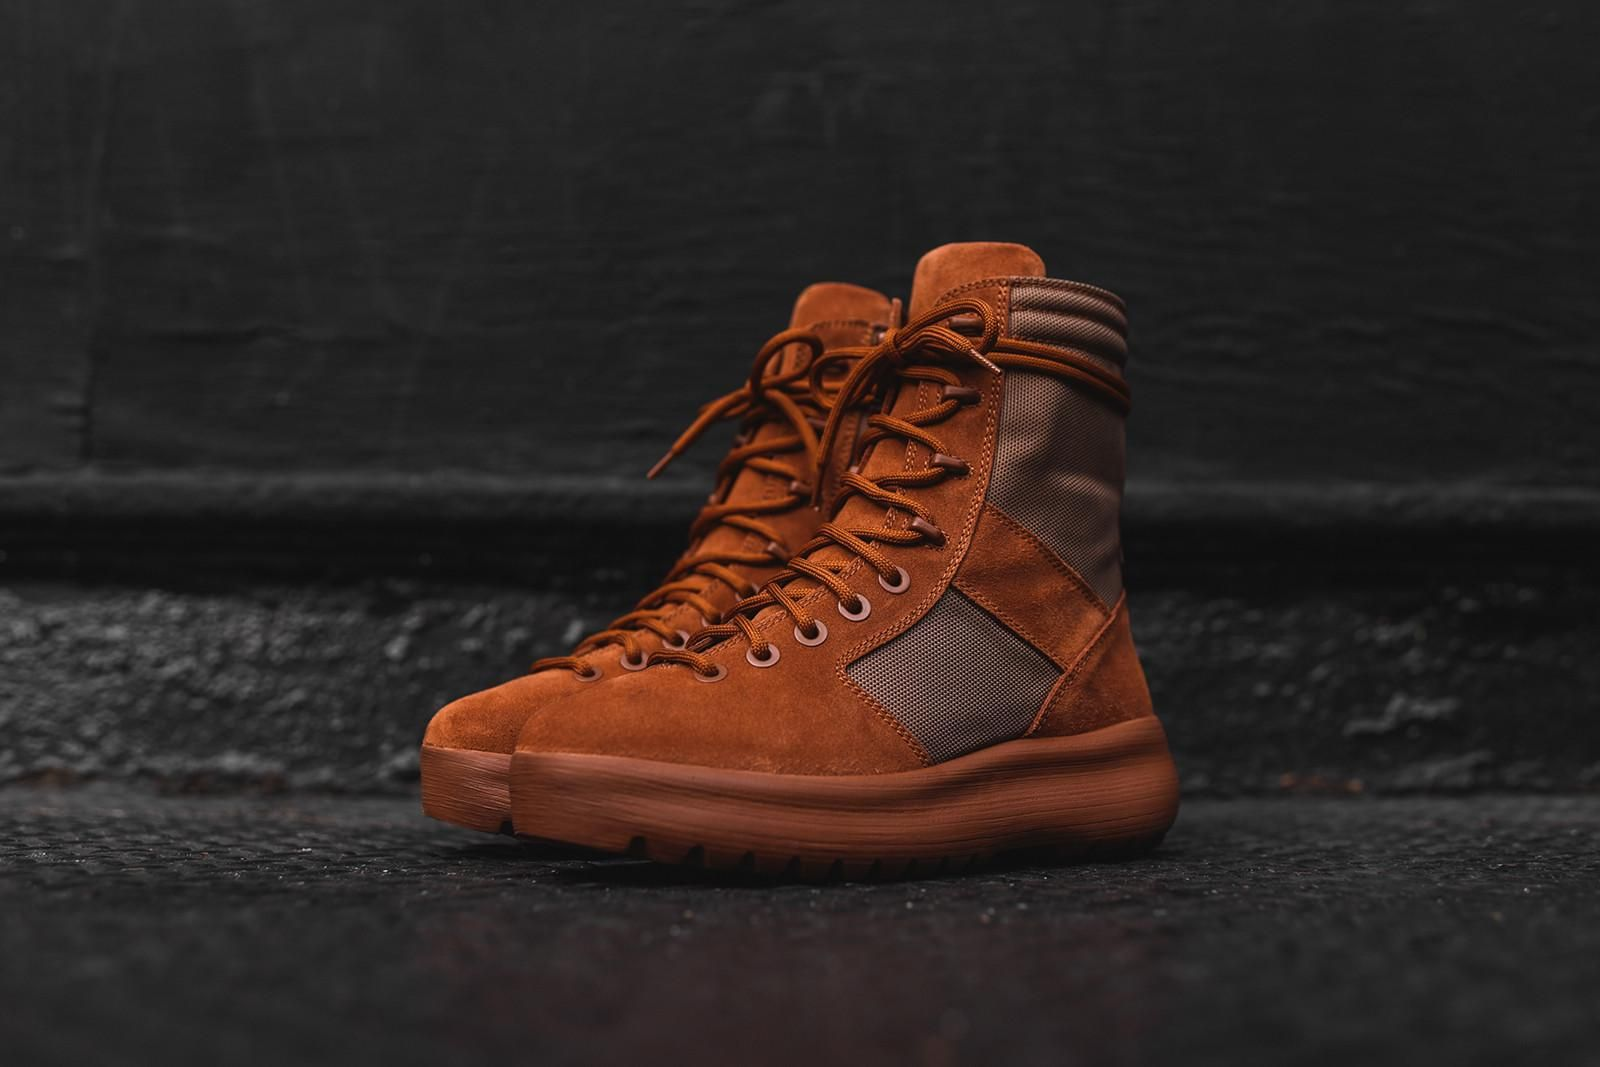 1b5e7f417d266 Yeezy Military Boot - Burnt Sienna – Kith NYC